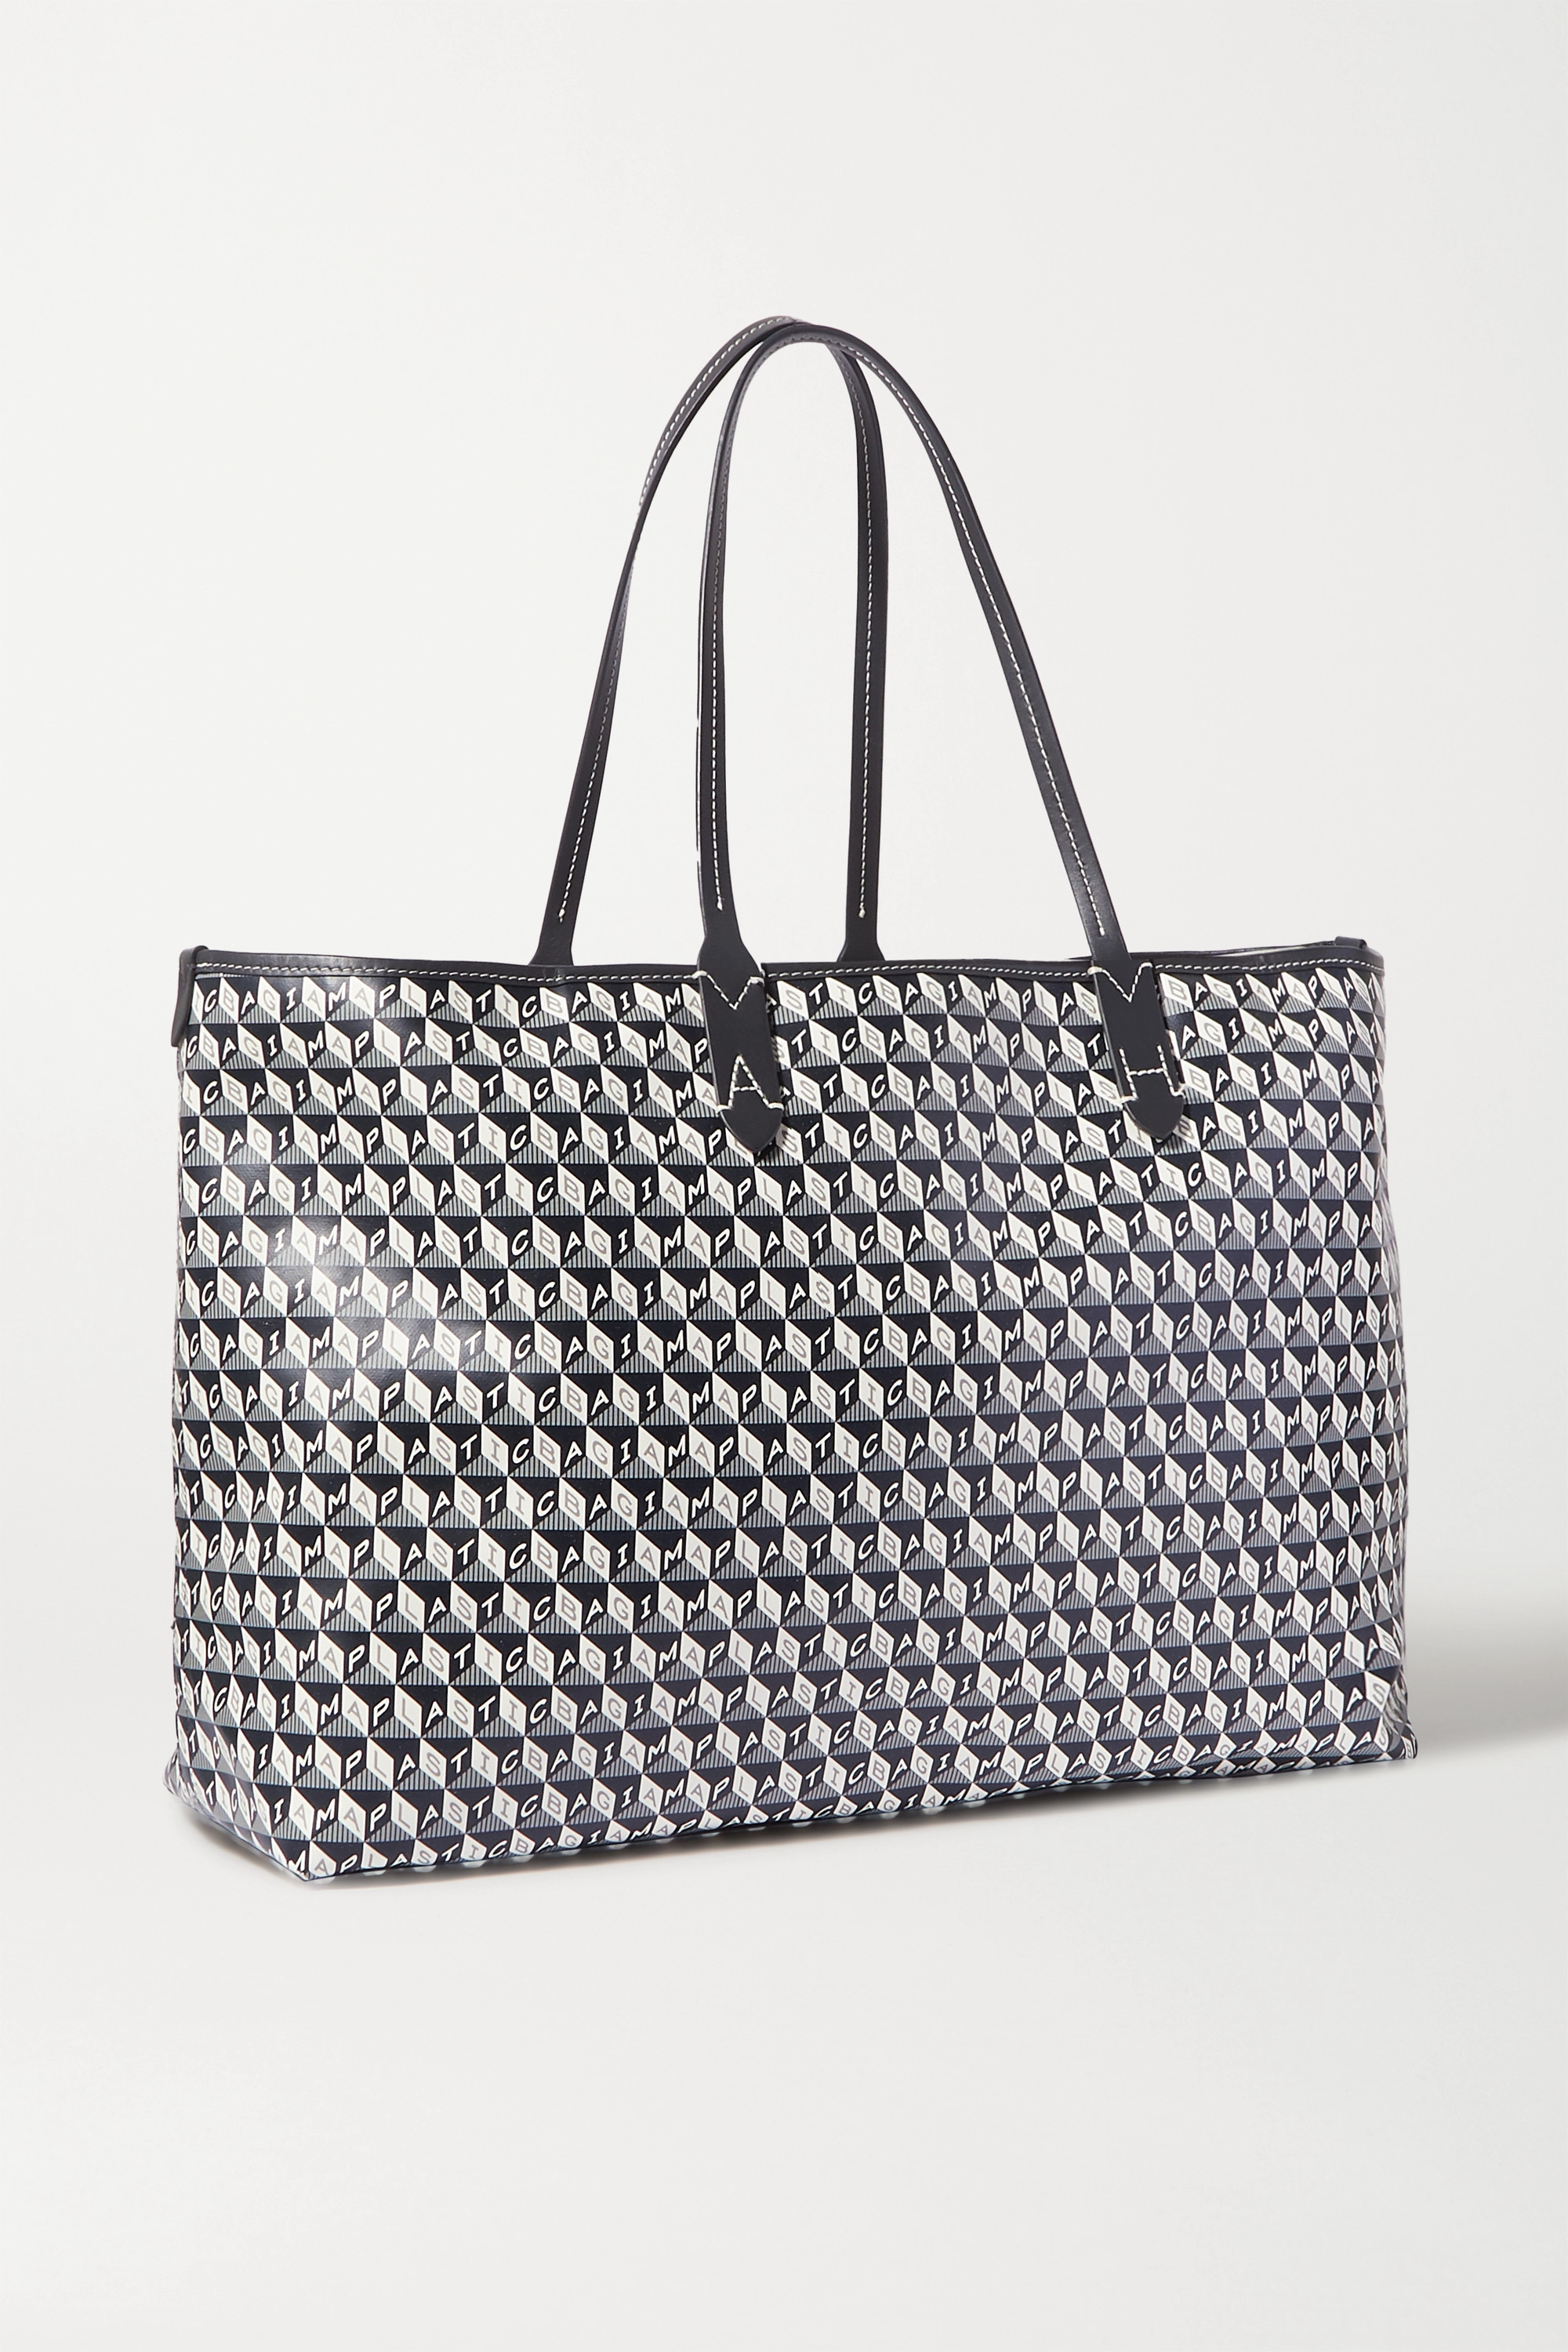 Anya Hindmarch + NET SUSTAIN I Am A Plastic Bag large leather-trimmed printed coated-canvas tote